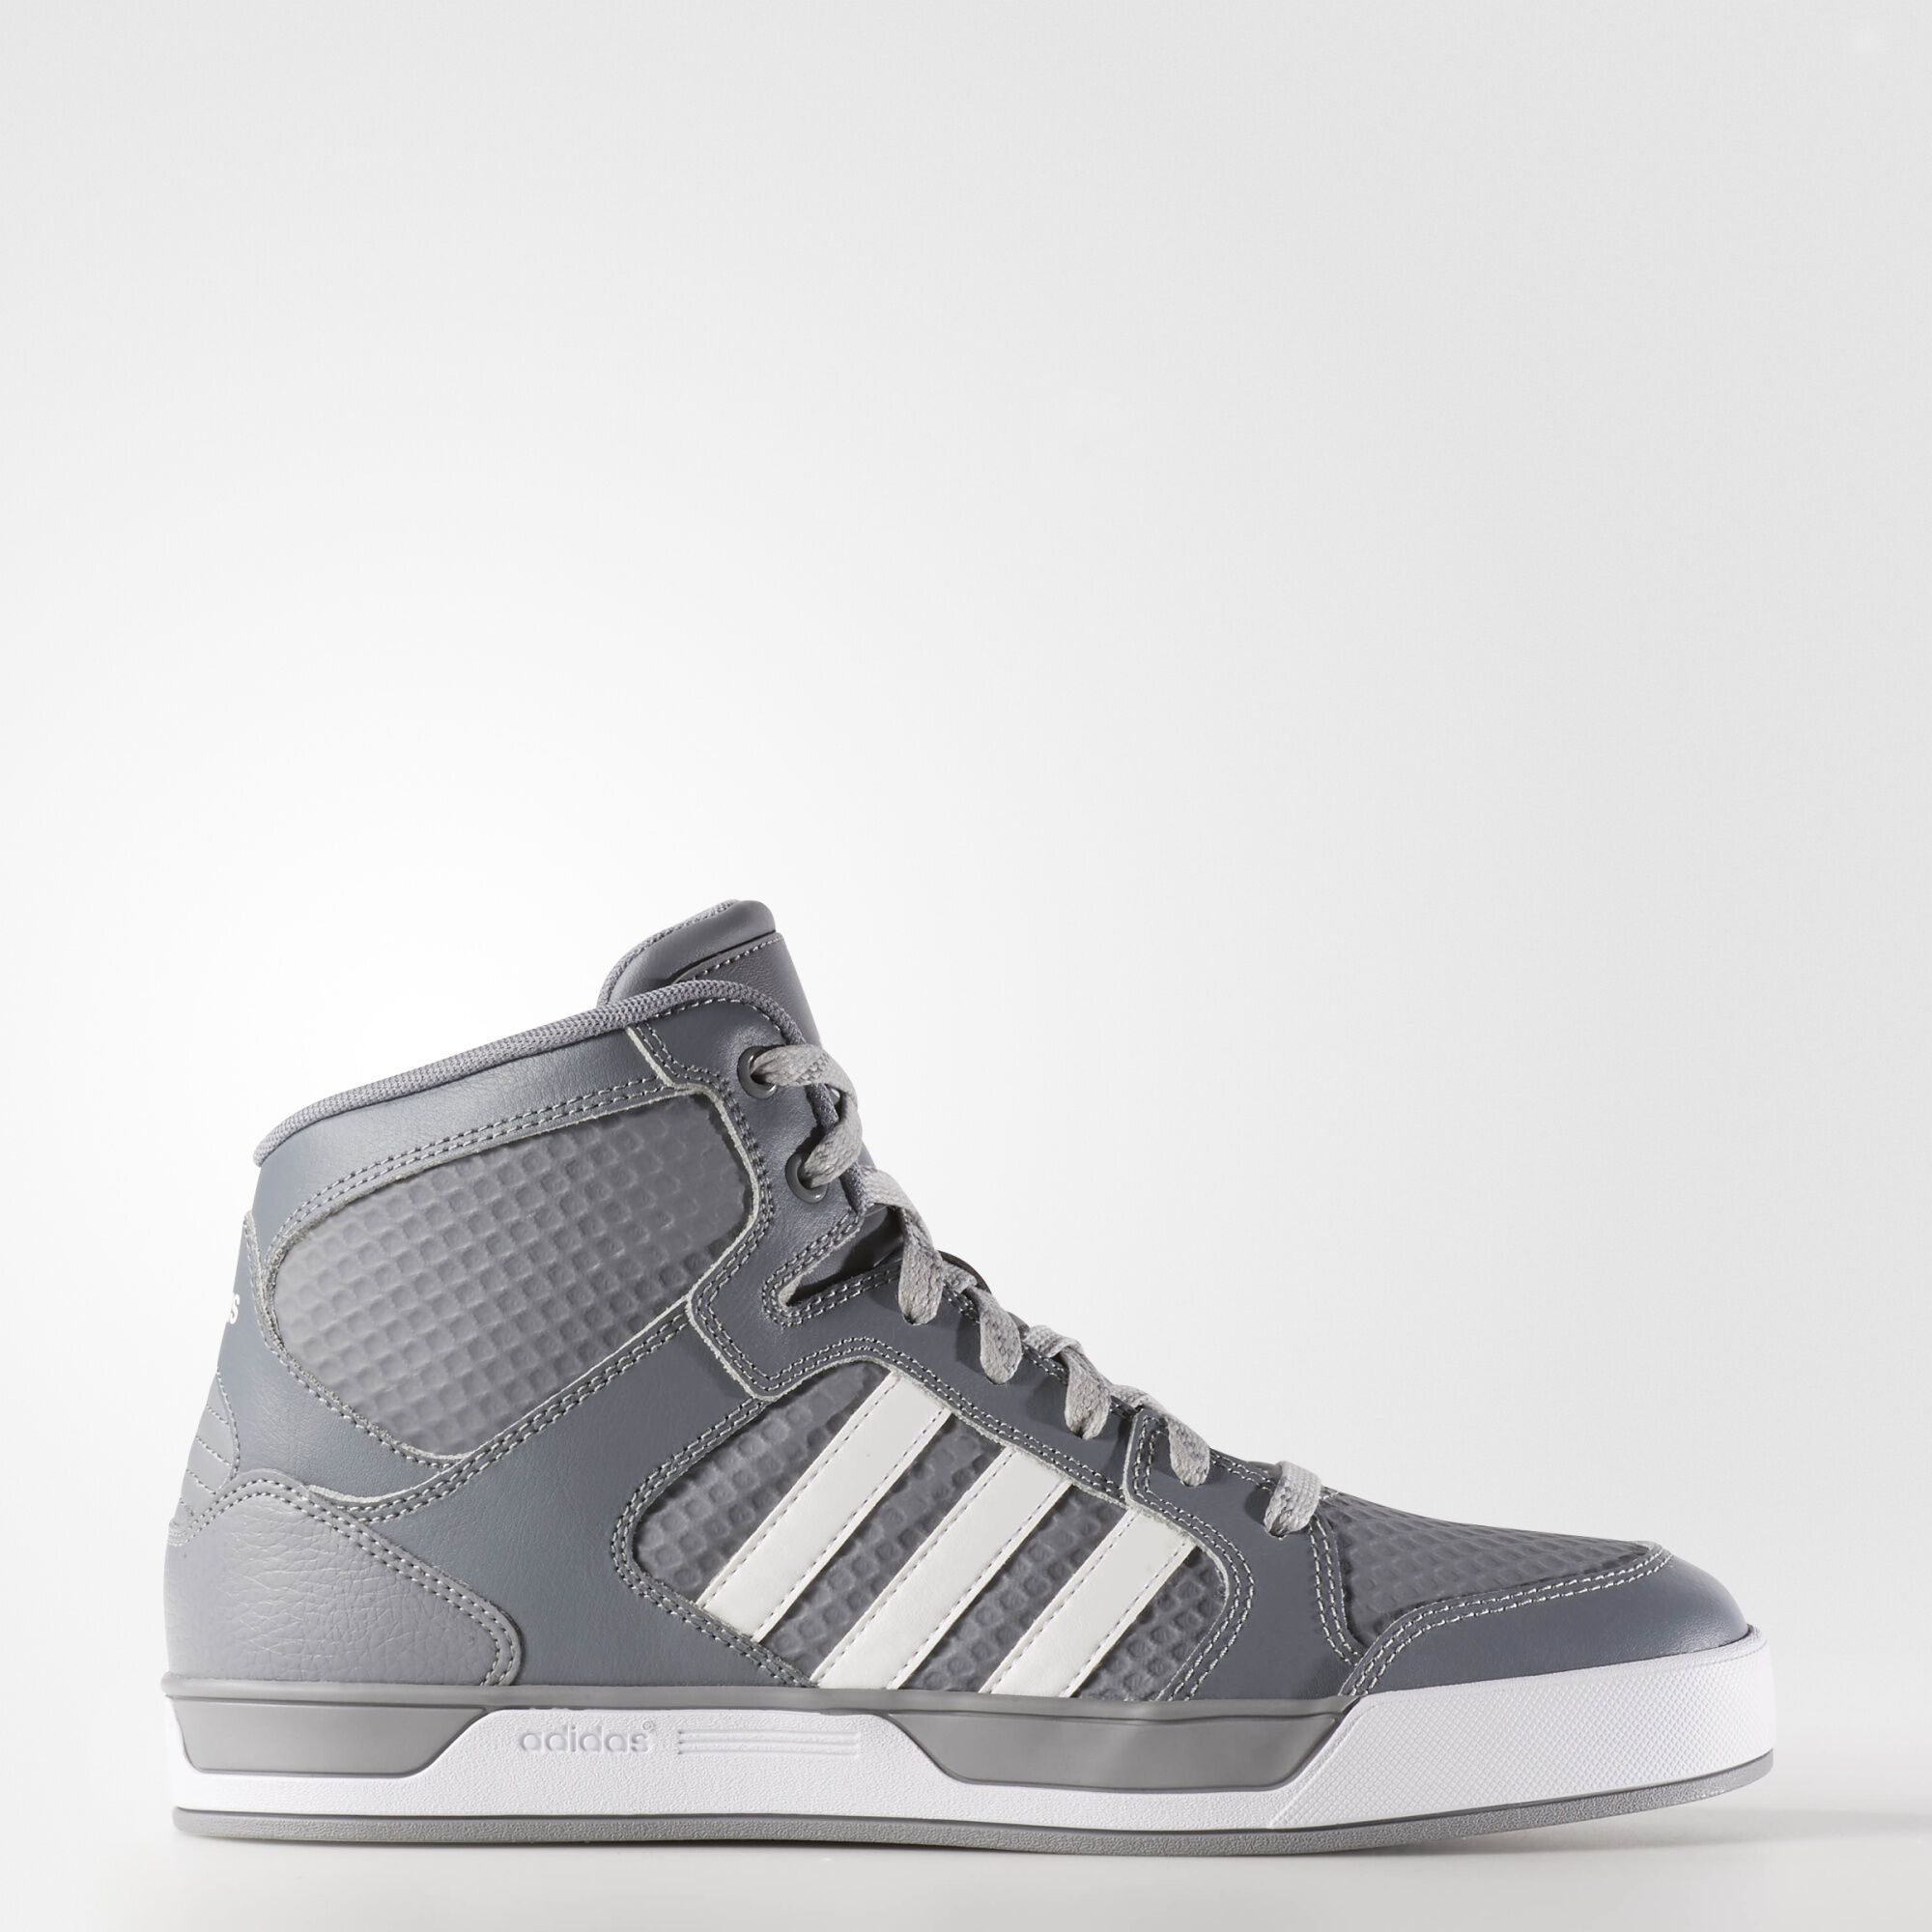 adidas neo high tops black and white losgranados